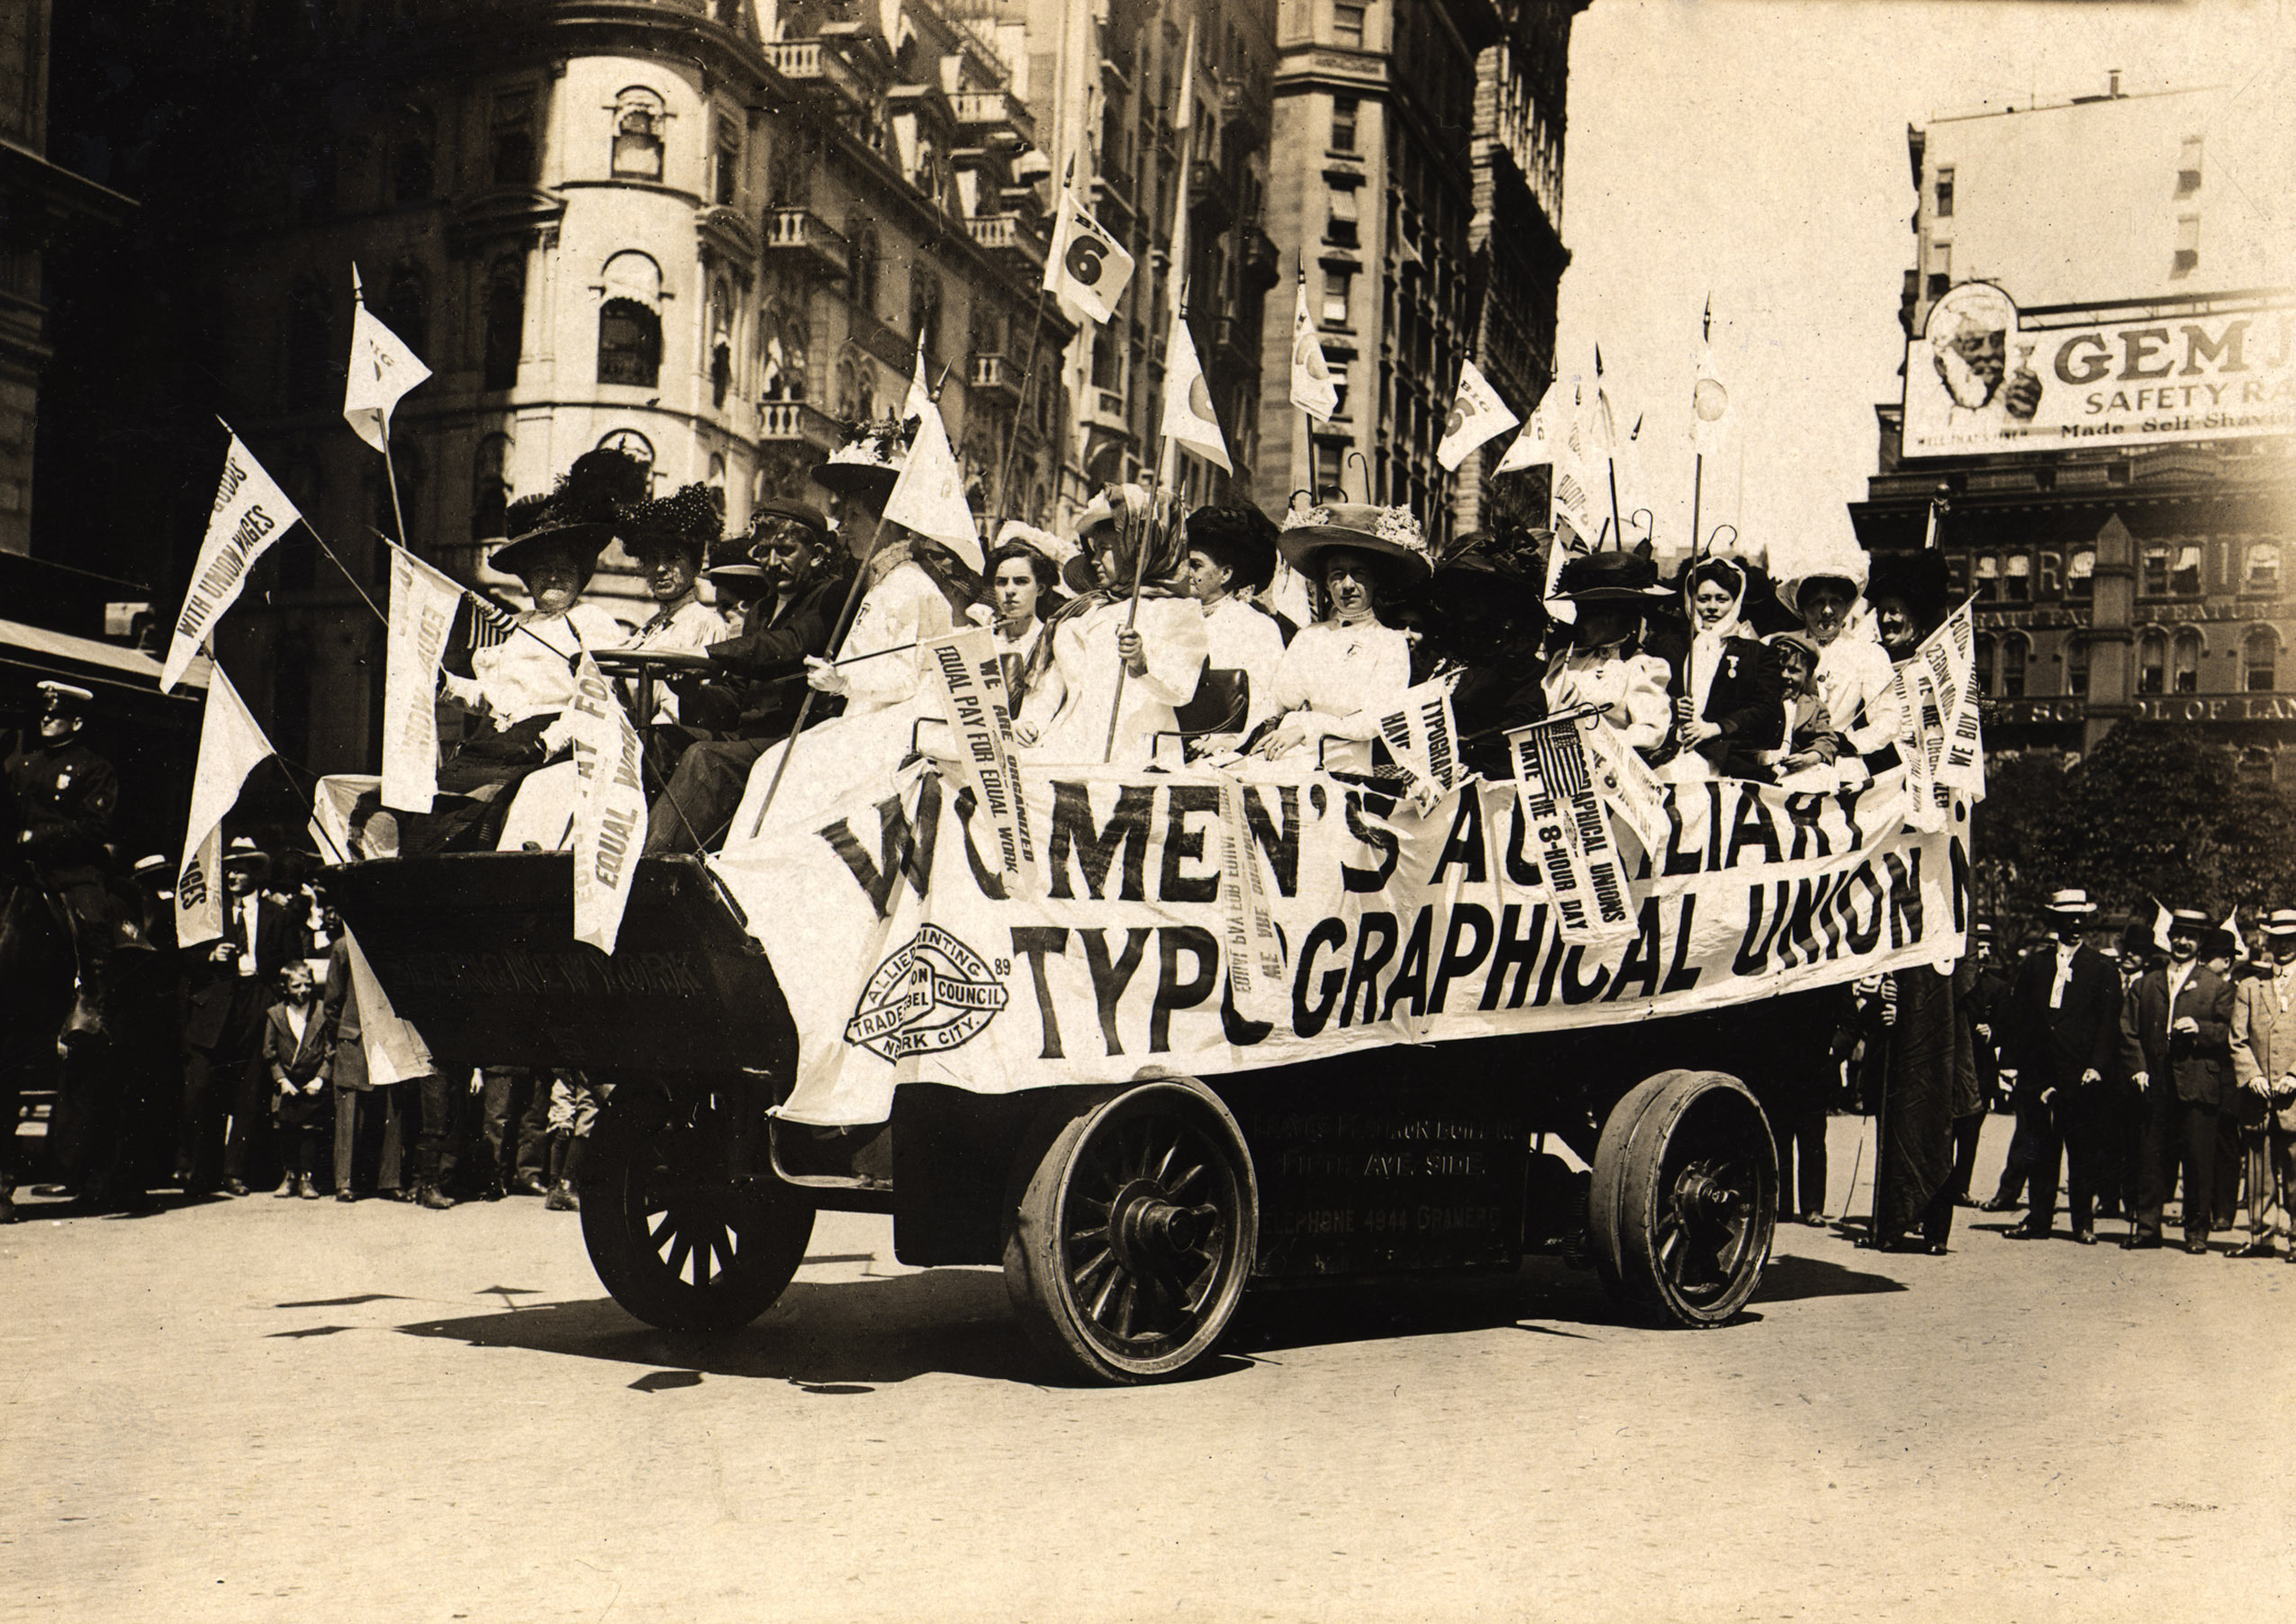 Historical black and white photo of Women's Auxiliary Typographical Union on parade float